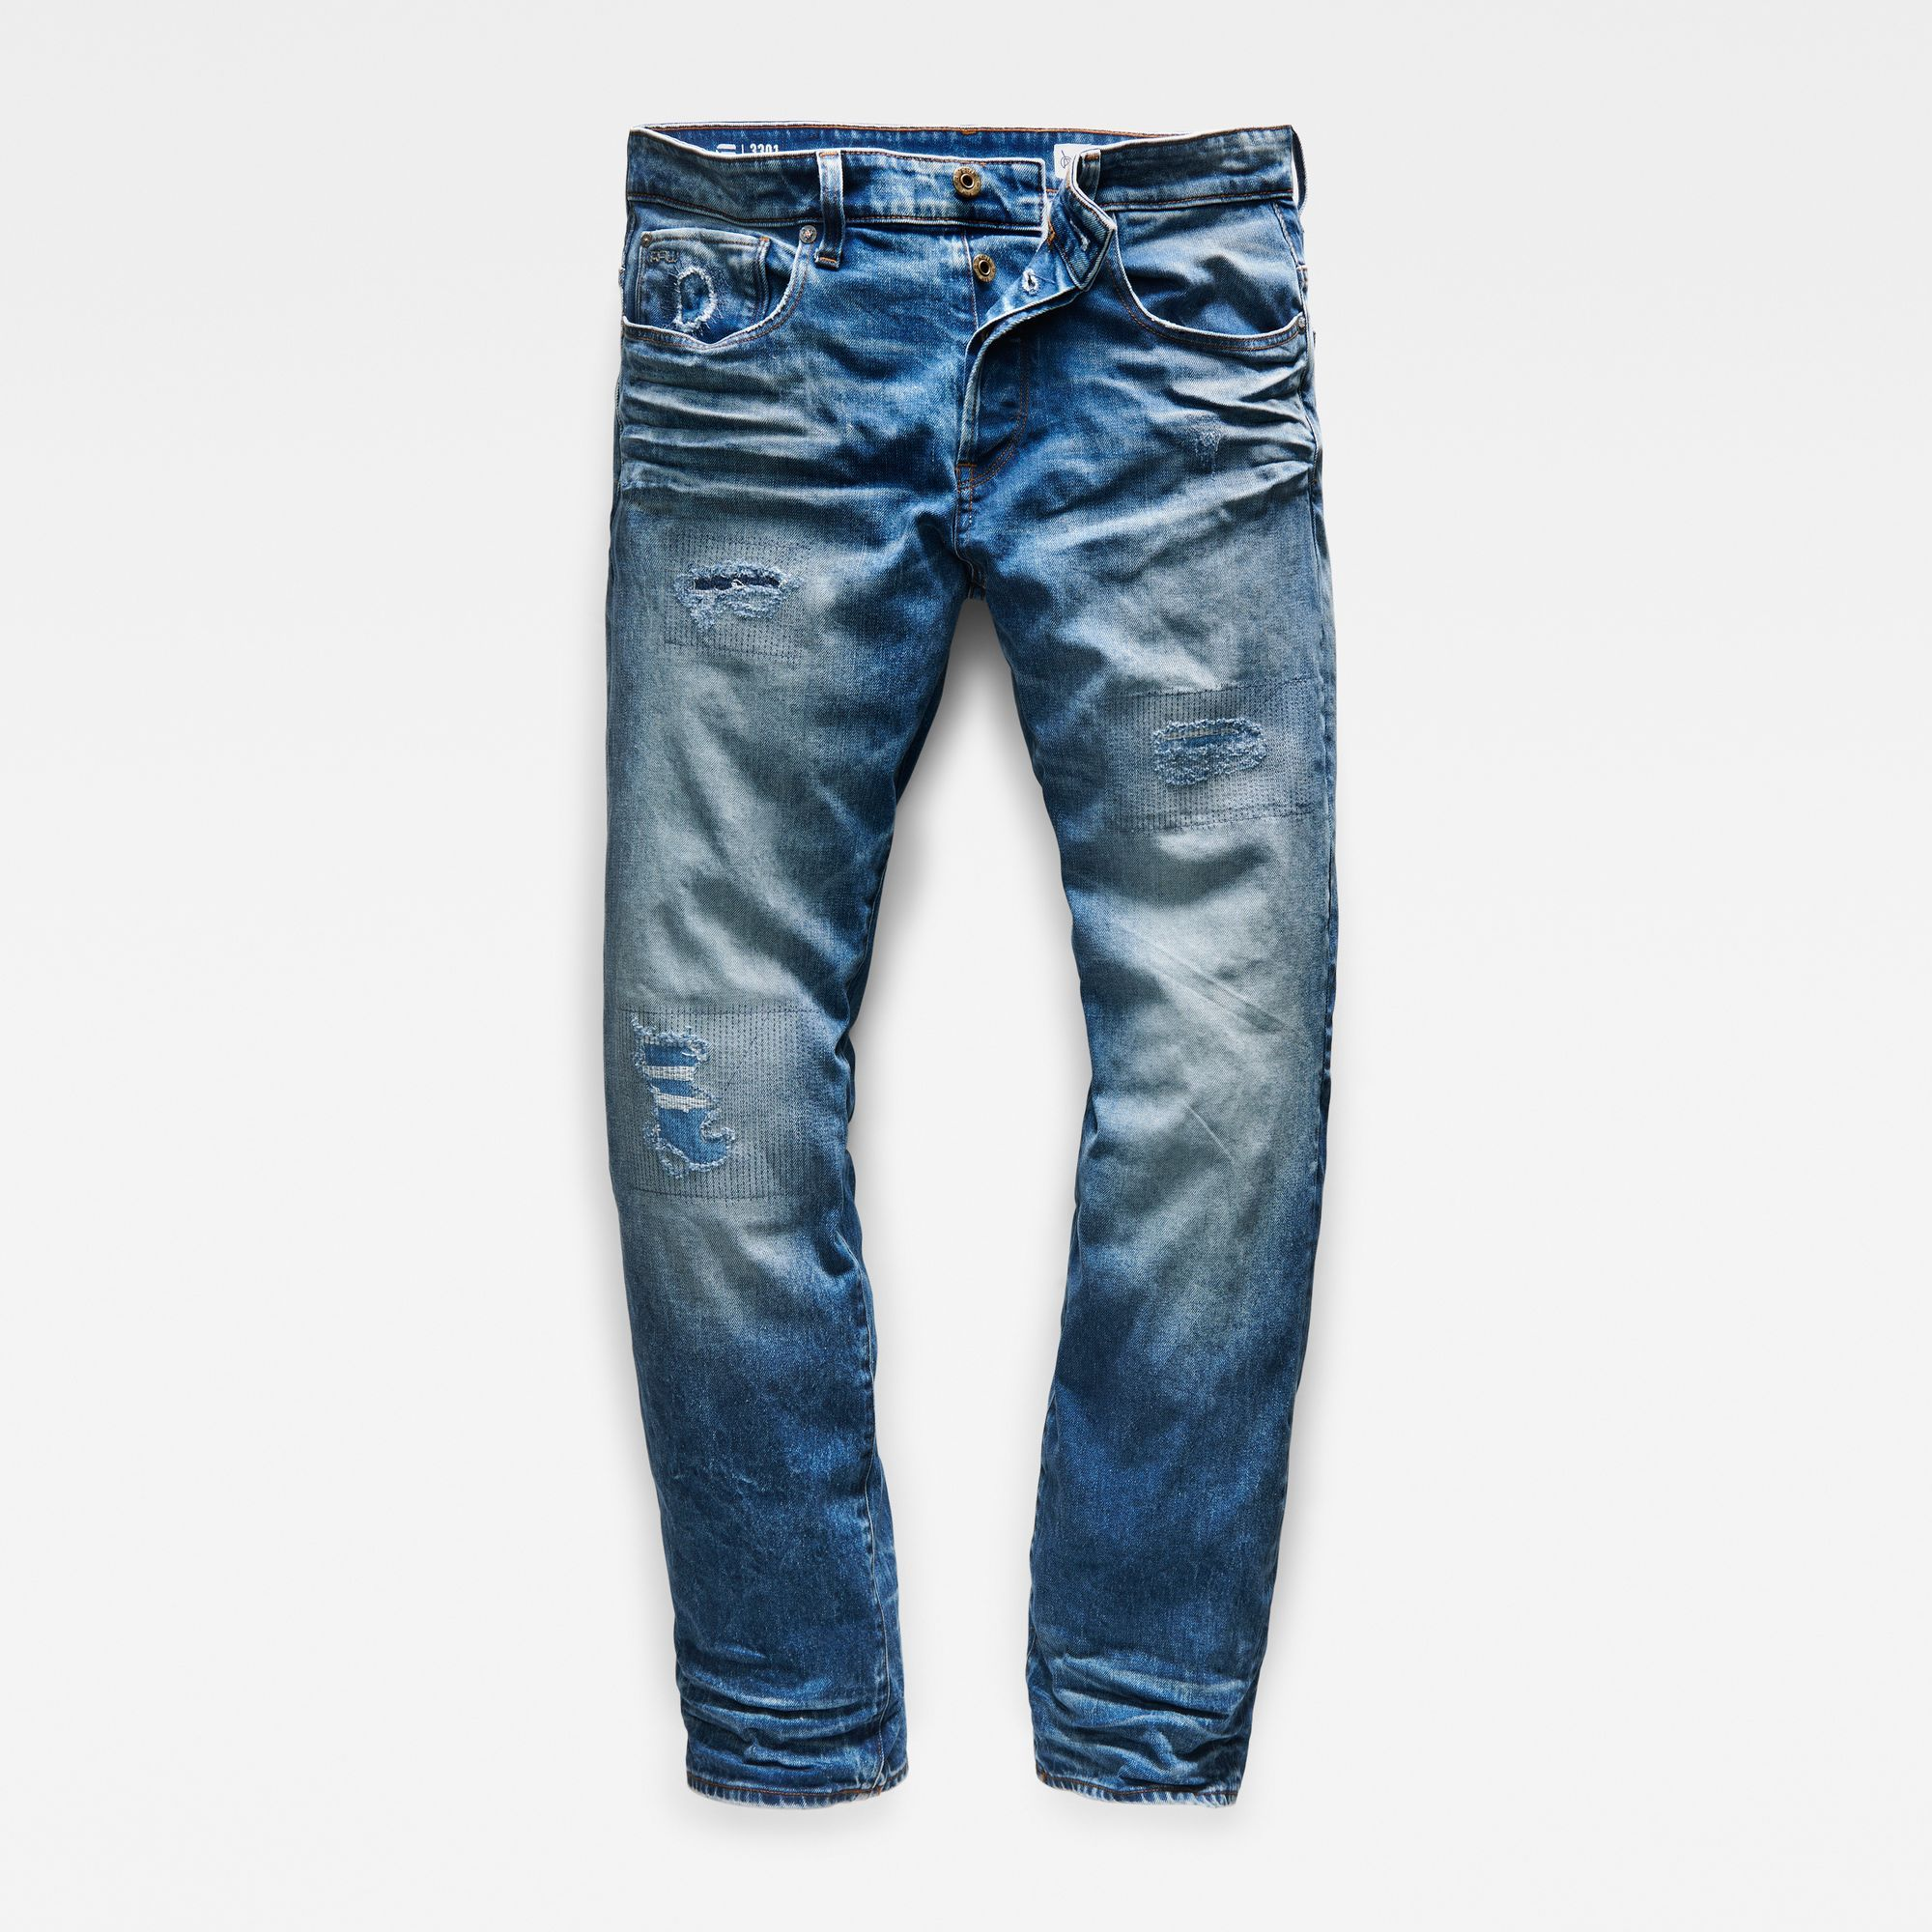 3301 Relaxed Jeans | Look e Curtidas